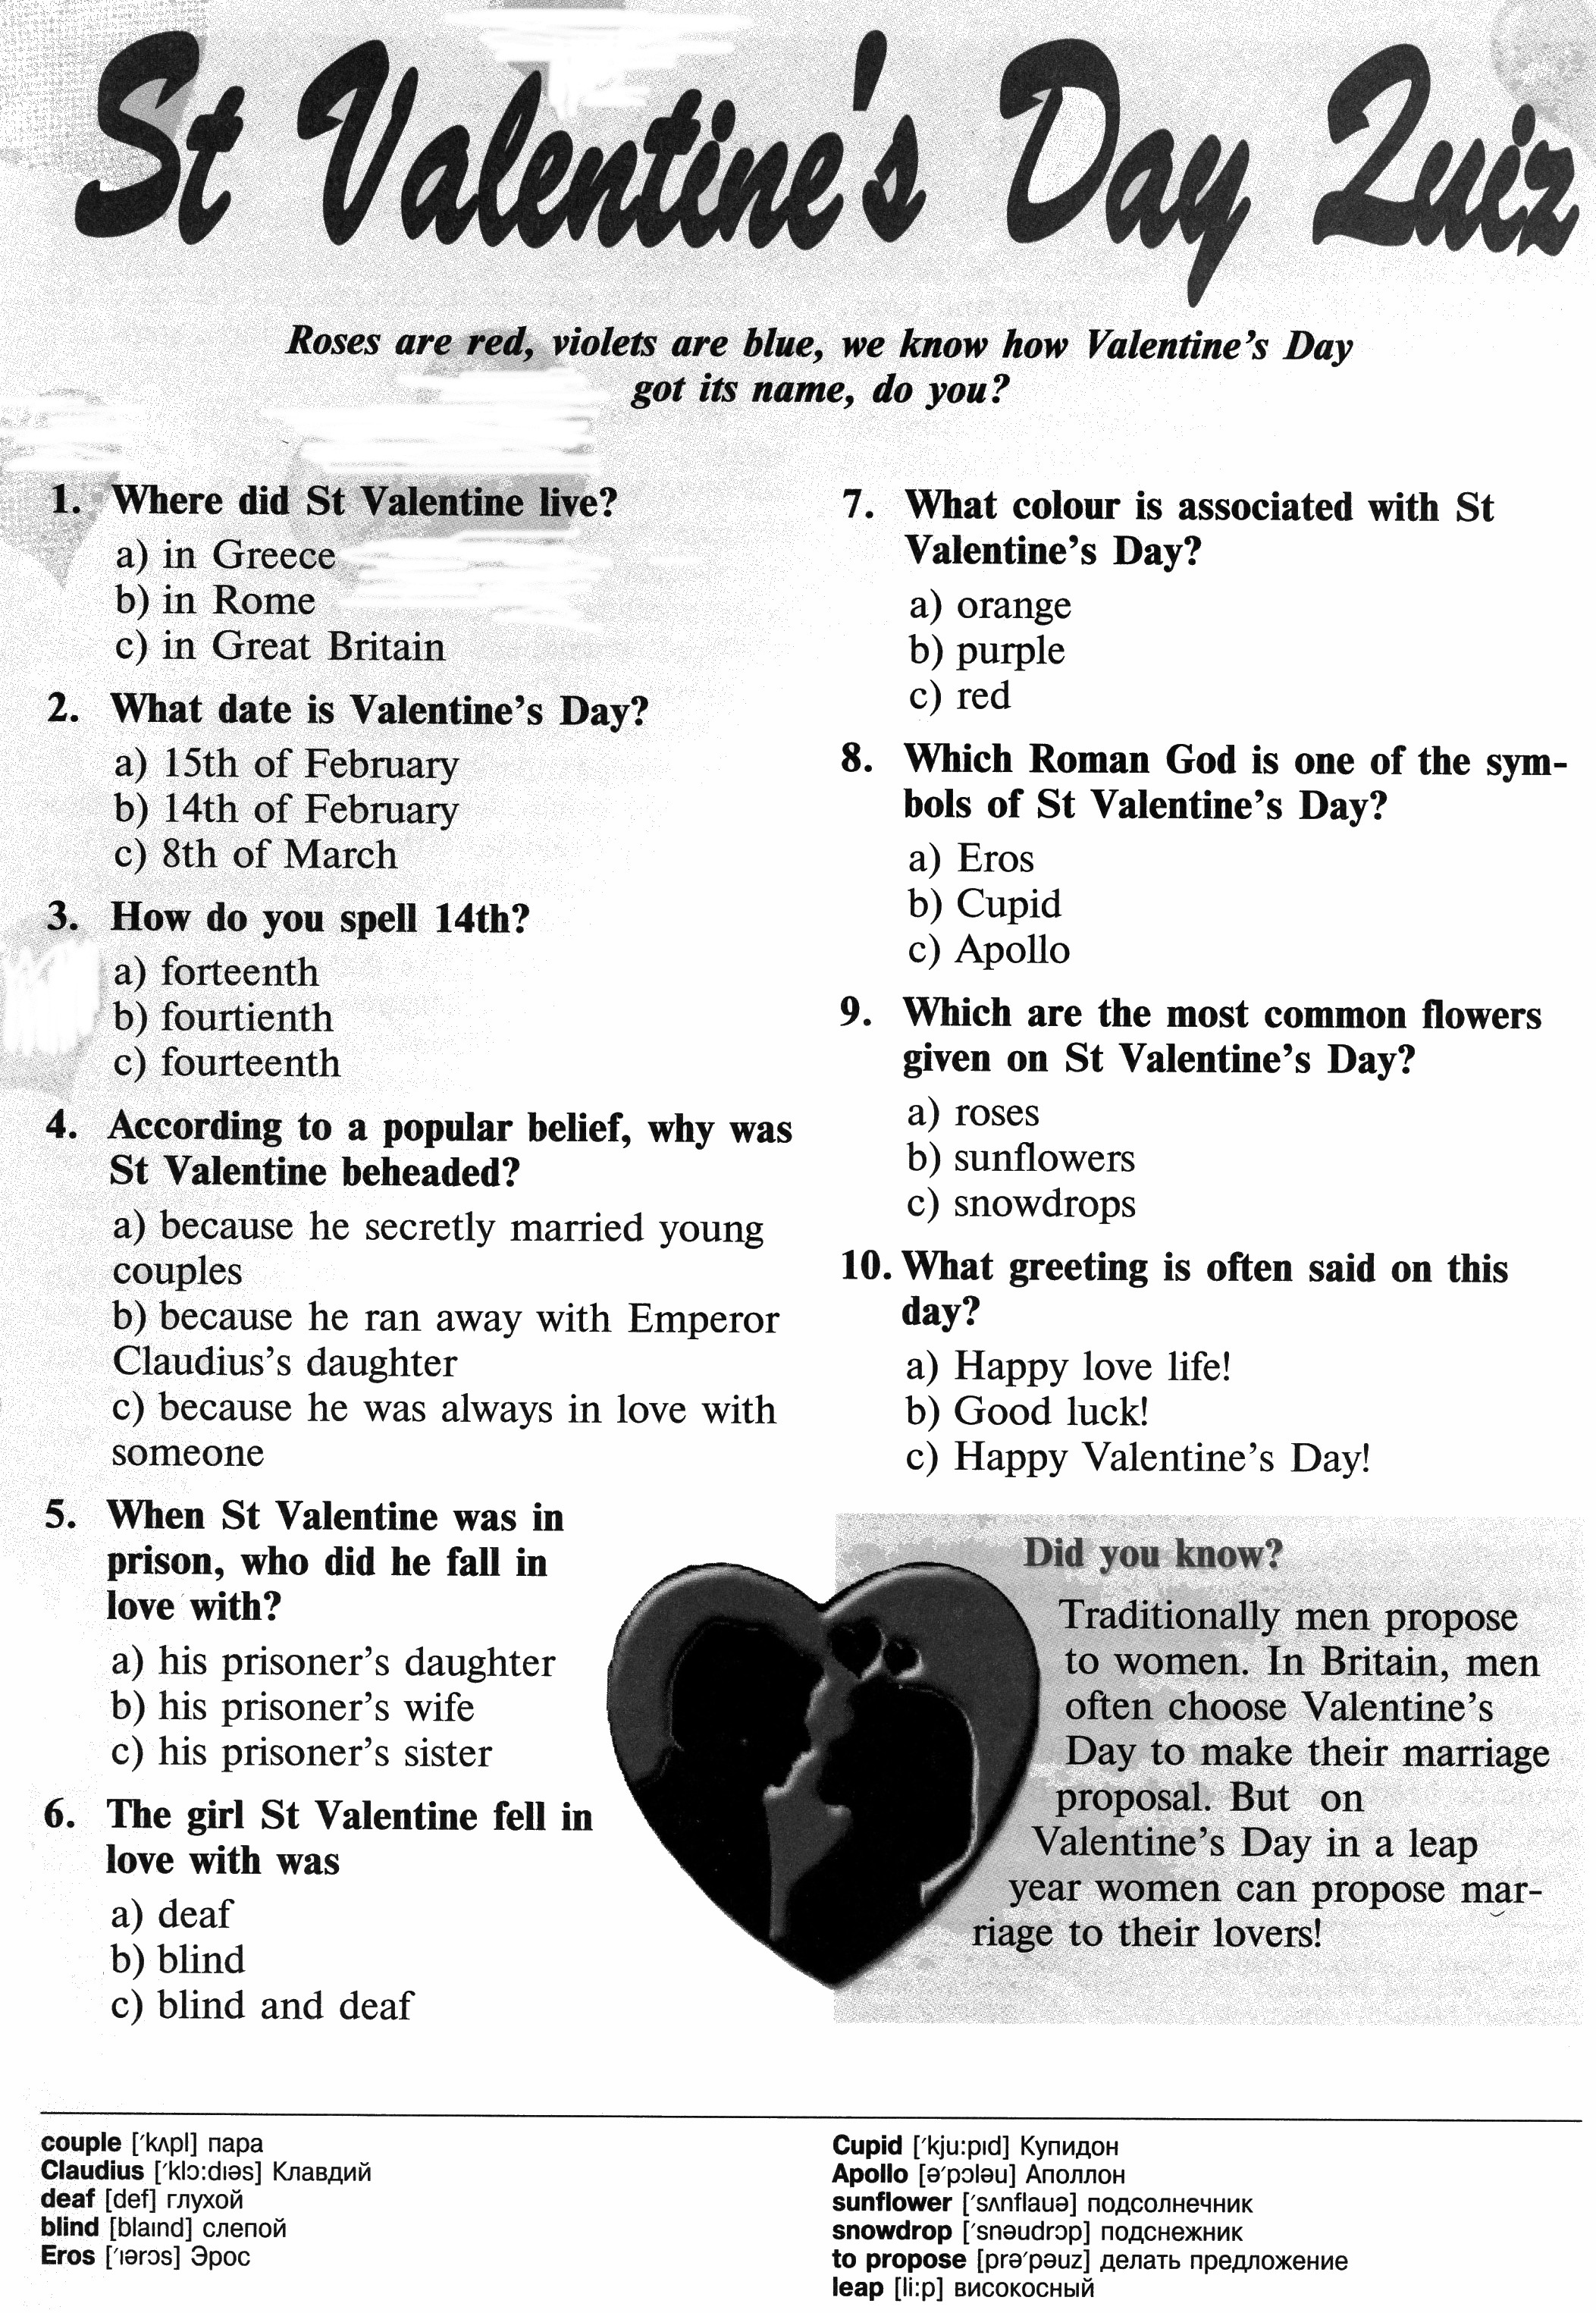 stvalentines day quiz - Who Was St Valentine And What Did He Do